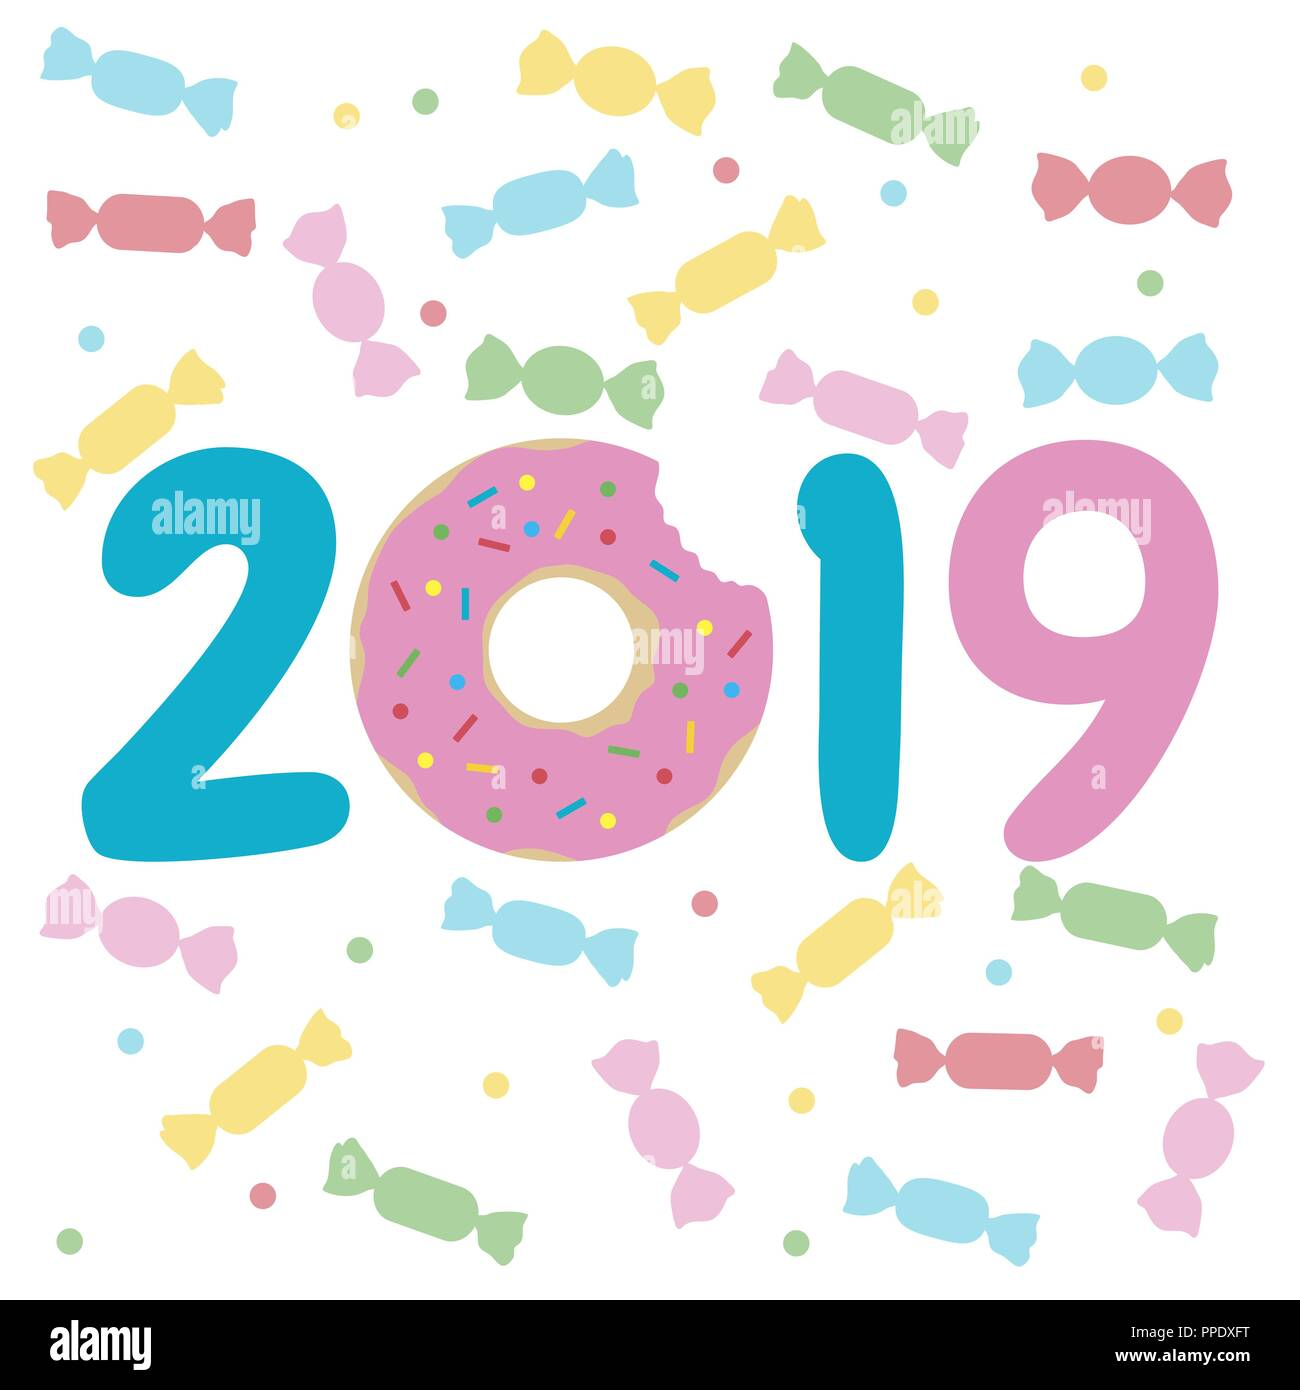 happy new year 2019 illustration with donut and candy design for decoration greeting card print